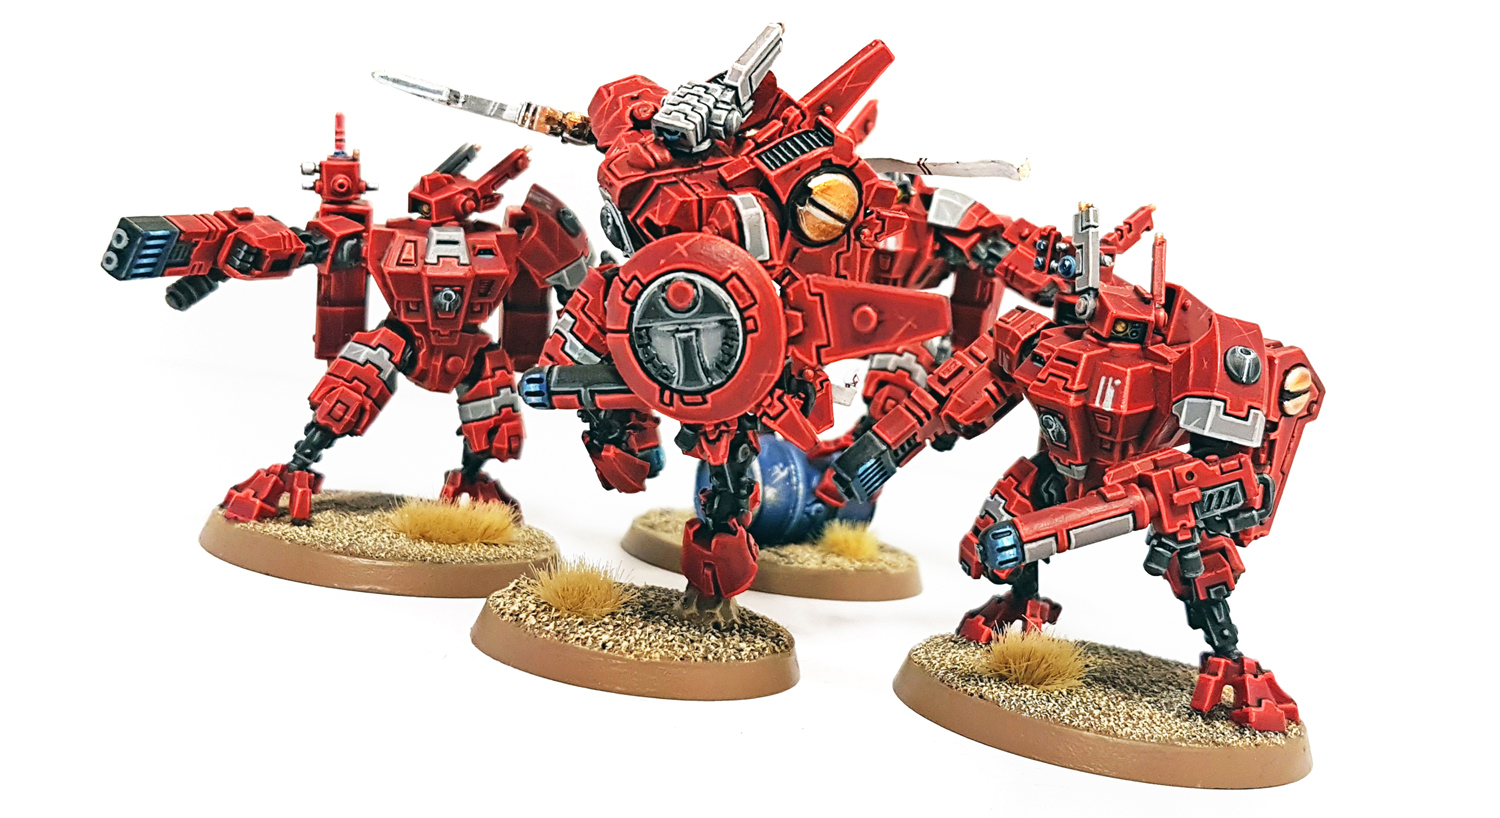 Deathhammer40k Warhammer 40,000 Commissions and Testimonials Tau Empire Project 3